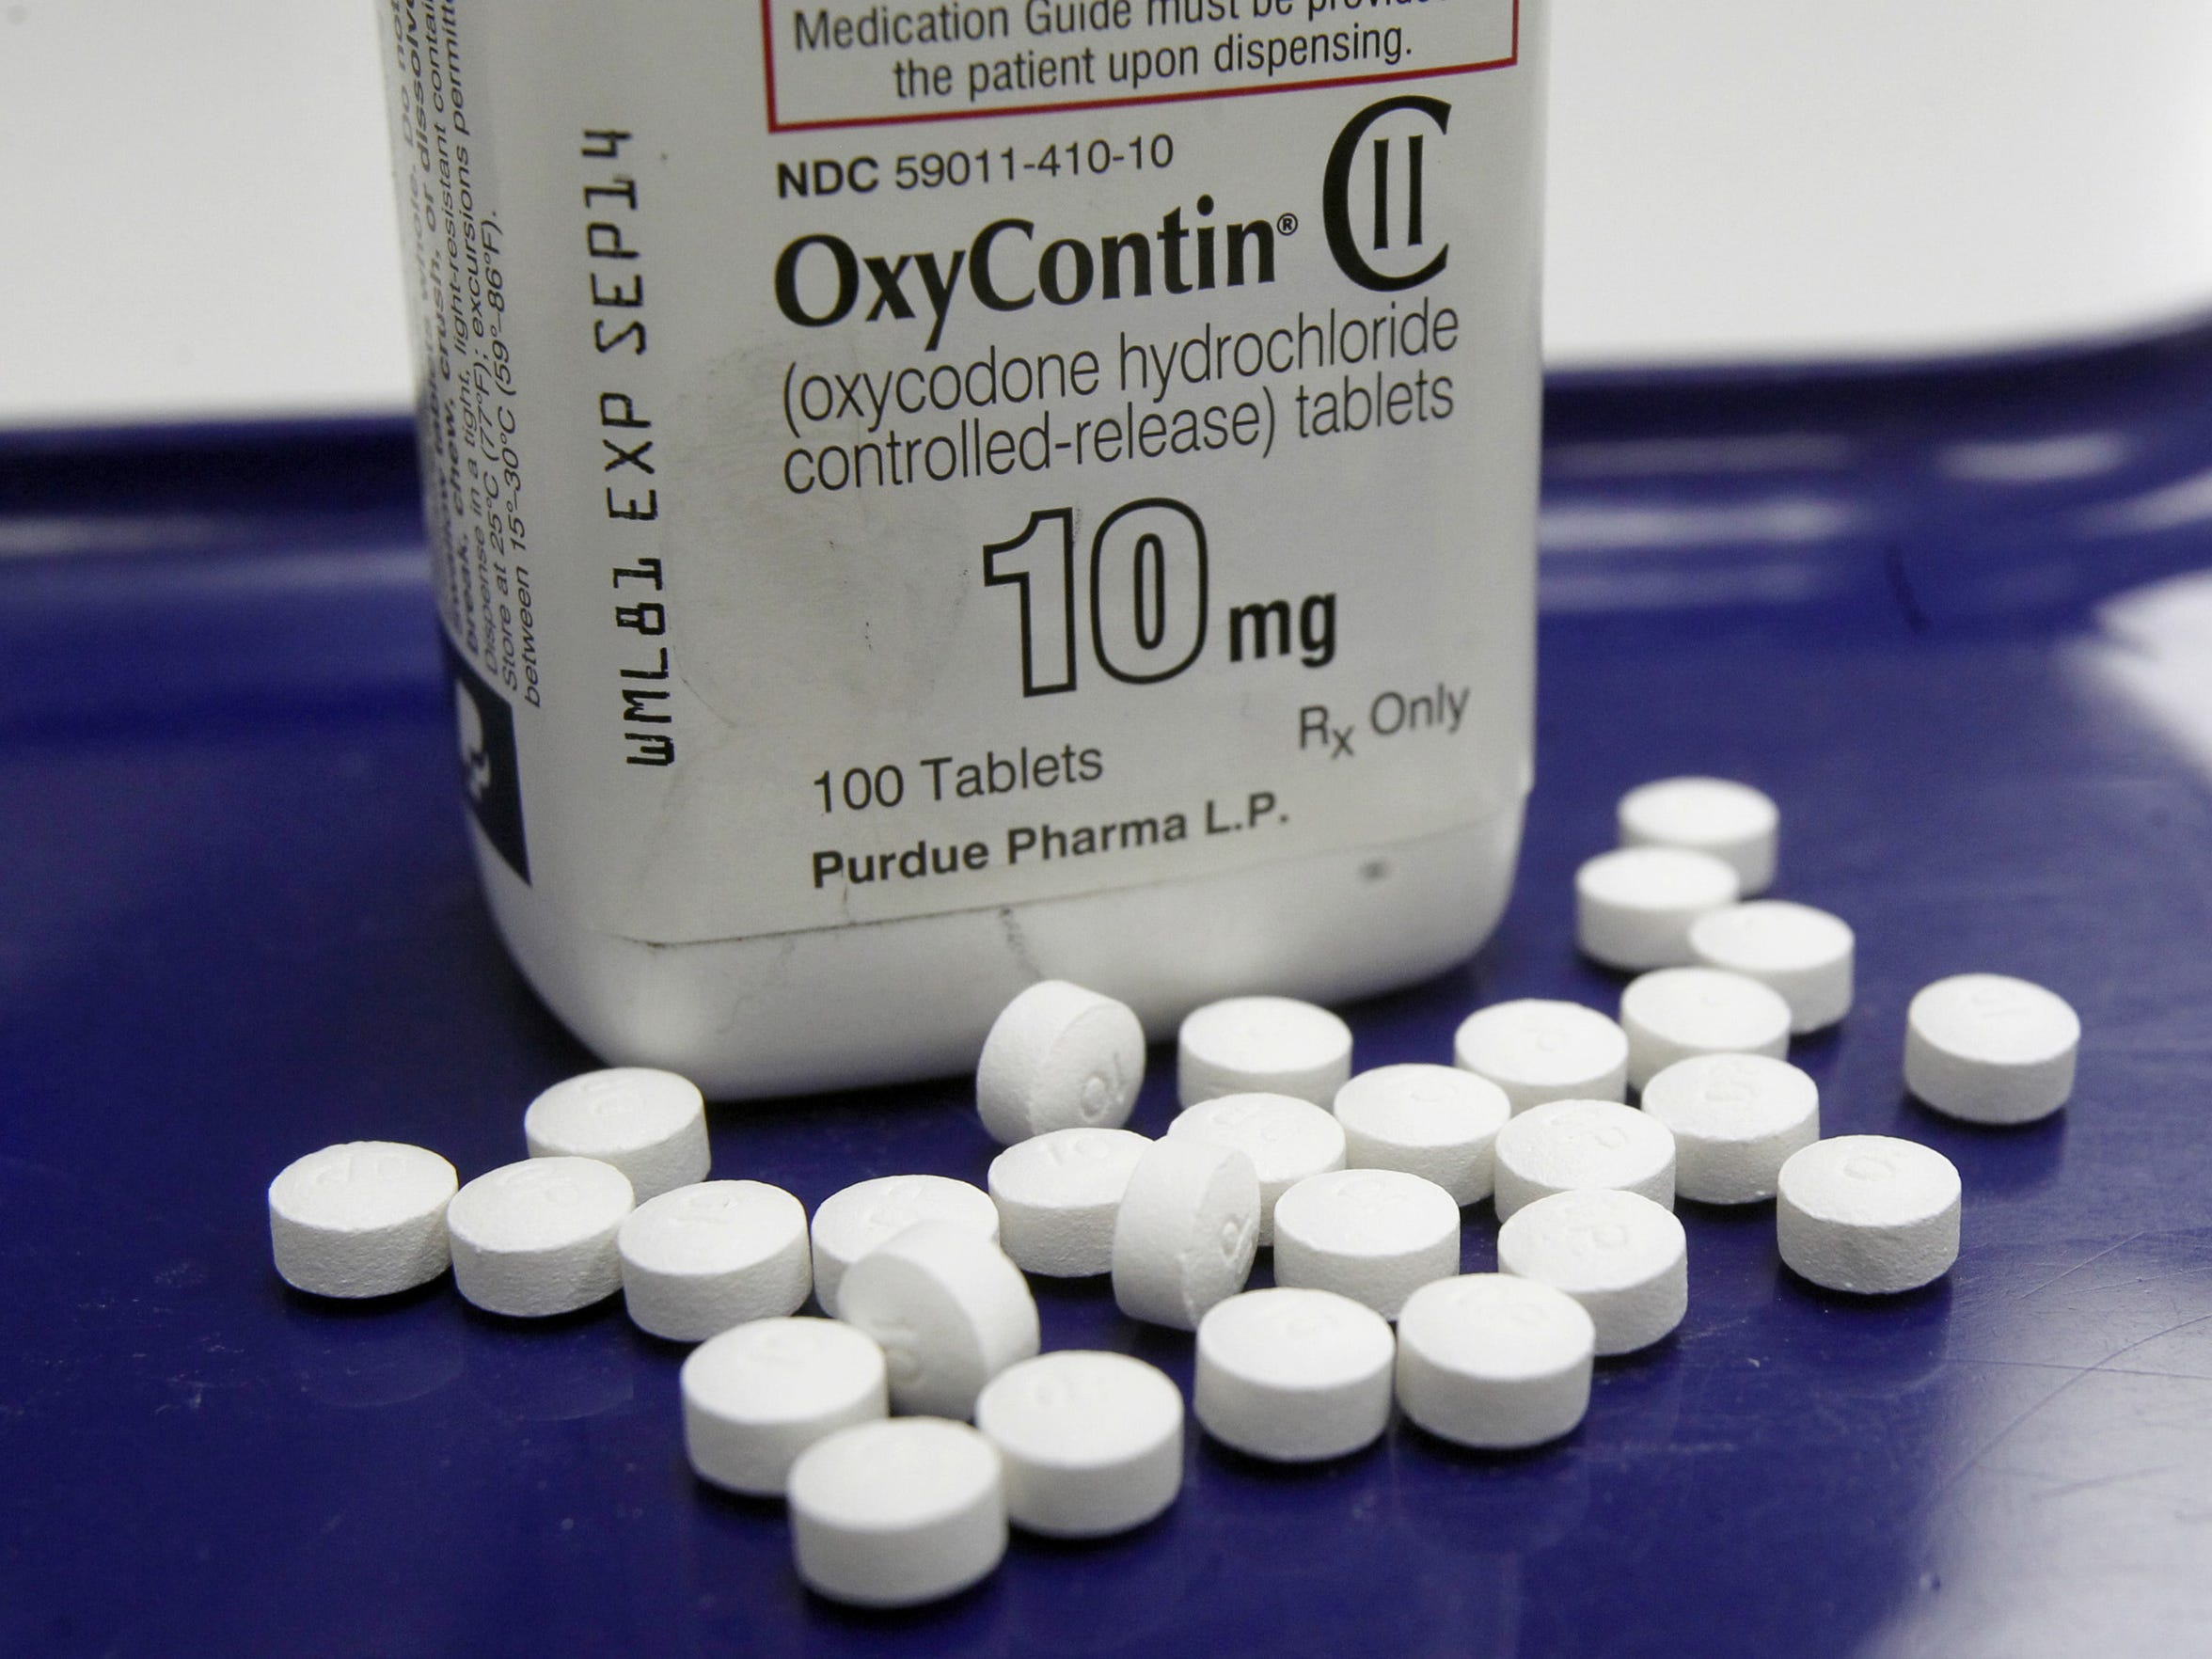 The Centers for Disease Control and Prevention reported in 2015 that drug overdoses in the U.S. rose again in 2014, driven by surges in deaths from heroin and powerful prescription painkillers such as Vicodin and Oxycontin, pictured here.